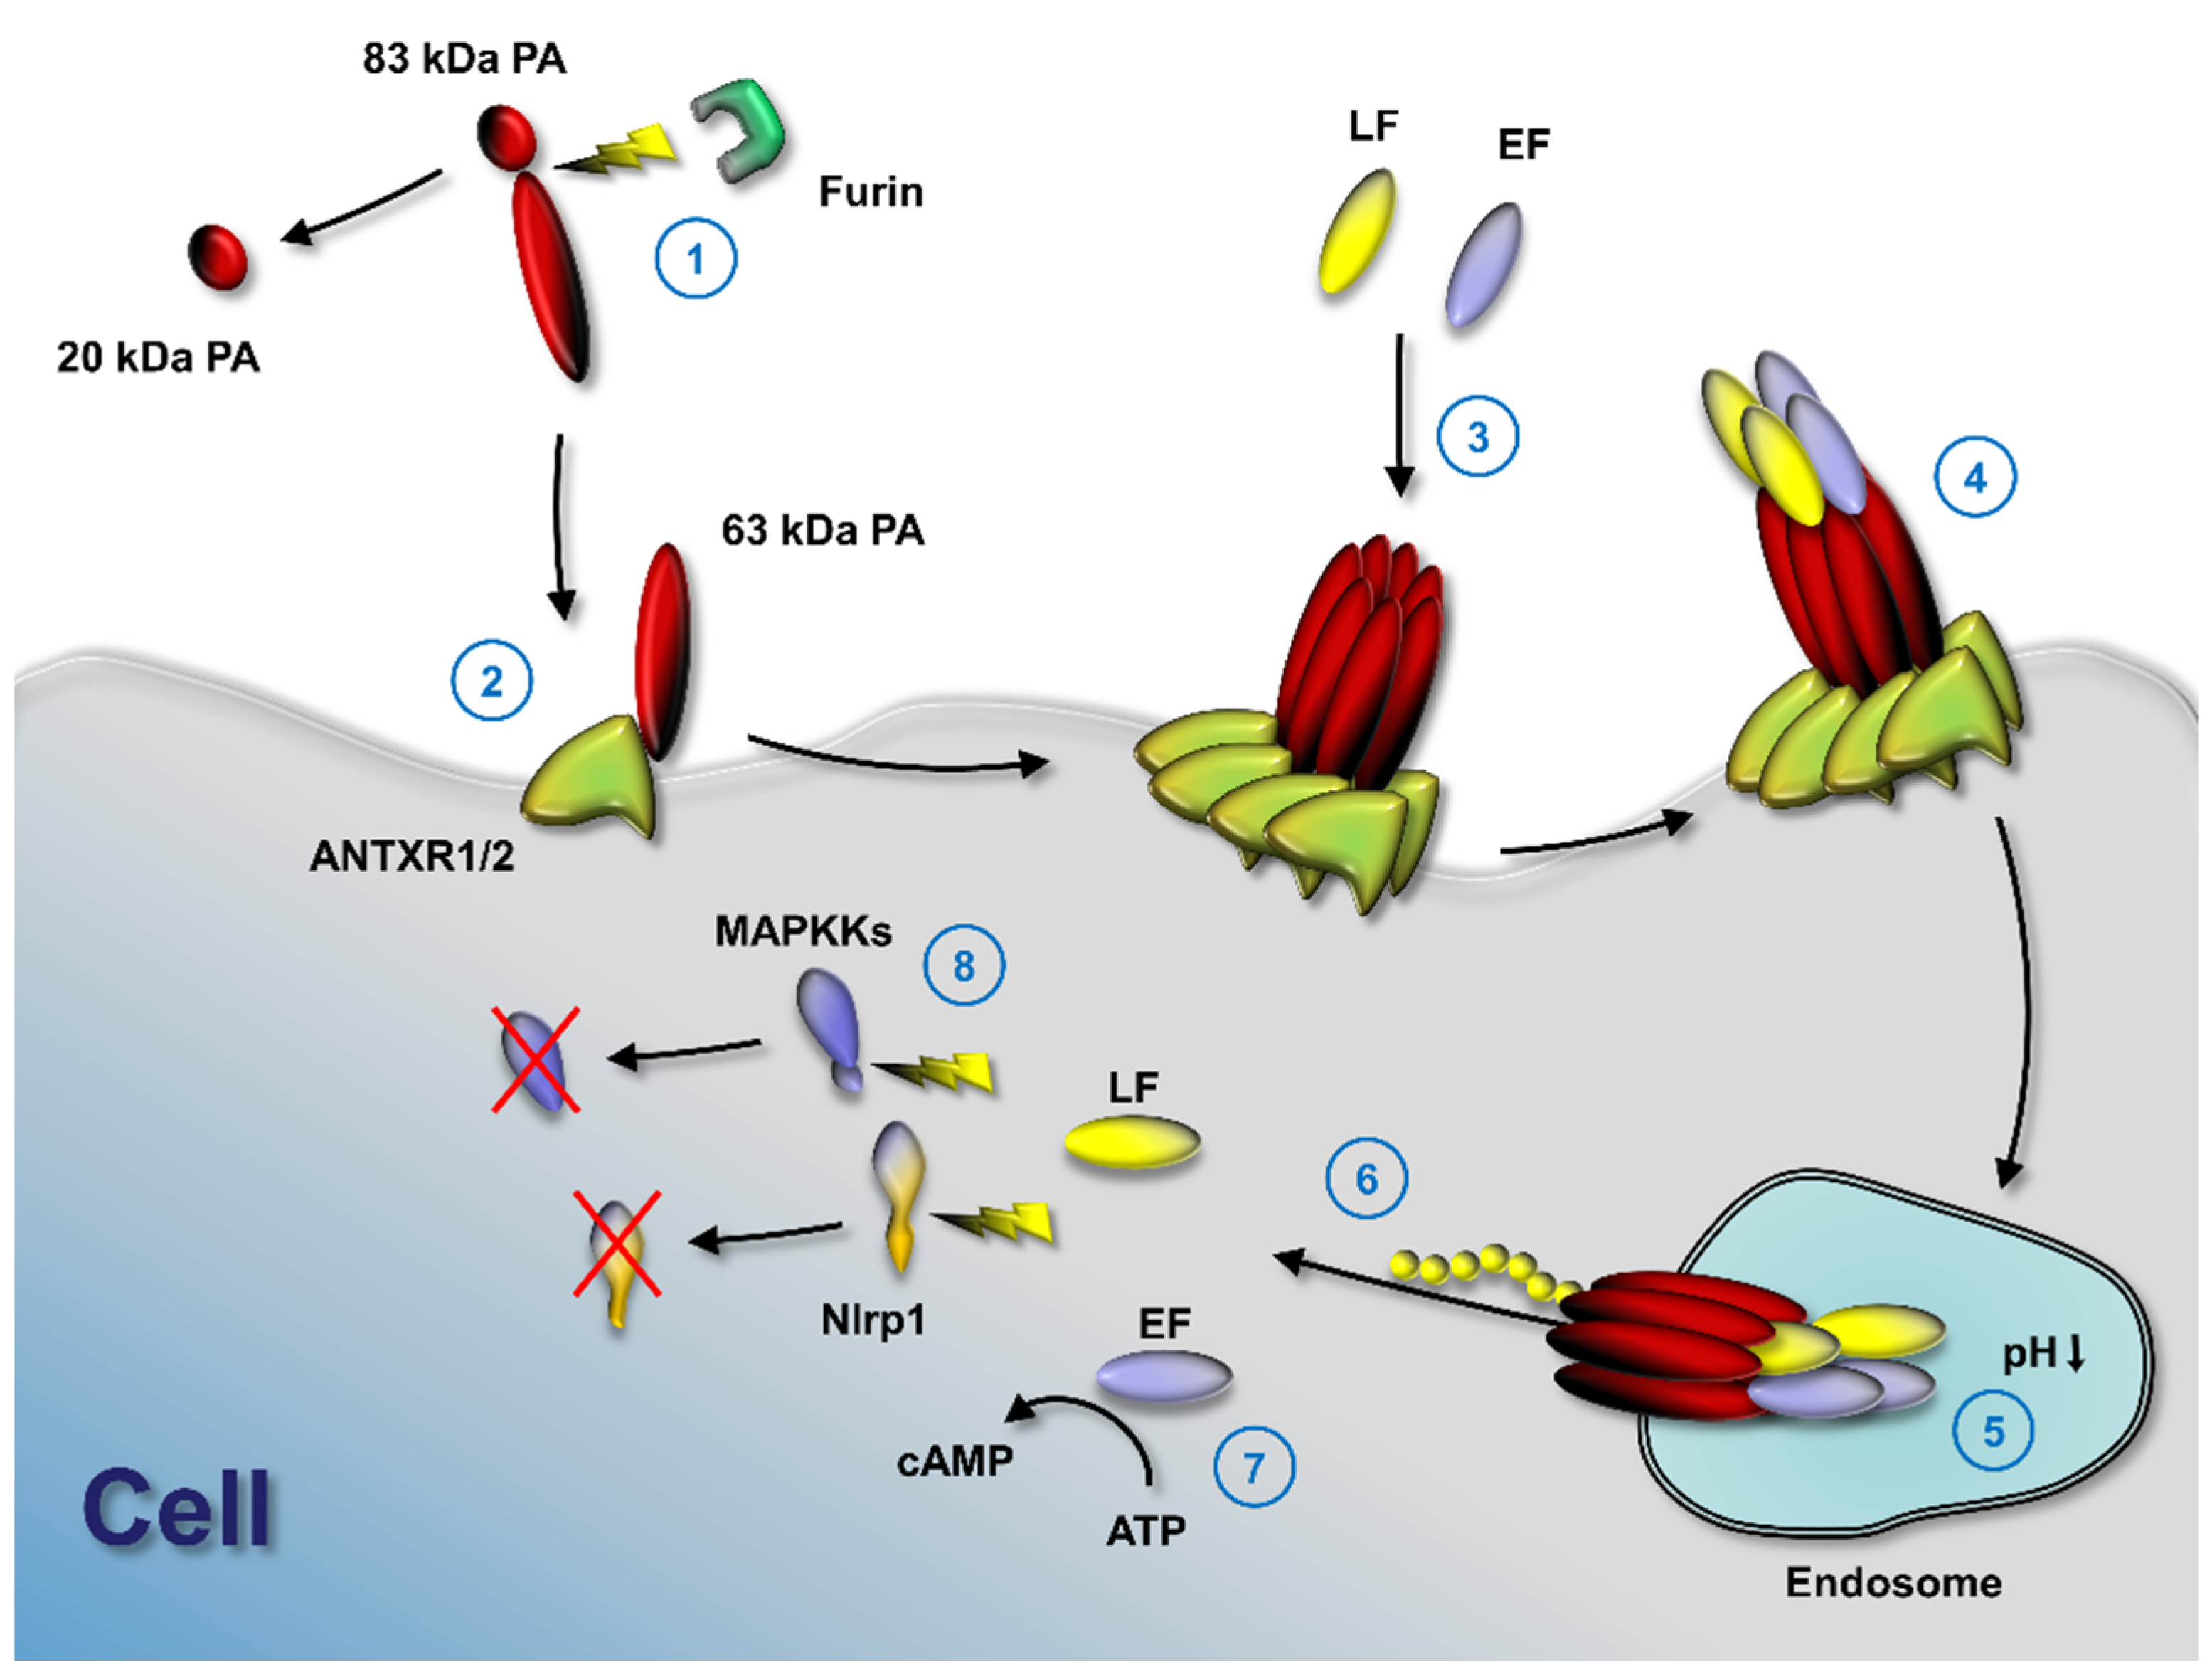 a summary of an article about anthrax toxins Structure summary: anthrax toxin lf subunit  anthrax toxin is a three-protein exotoxin secreted by virulent  diagram of the actions of the secreted anthrax toxins.